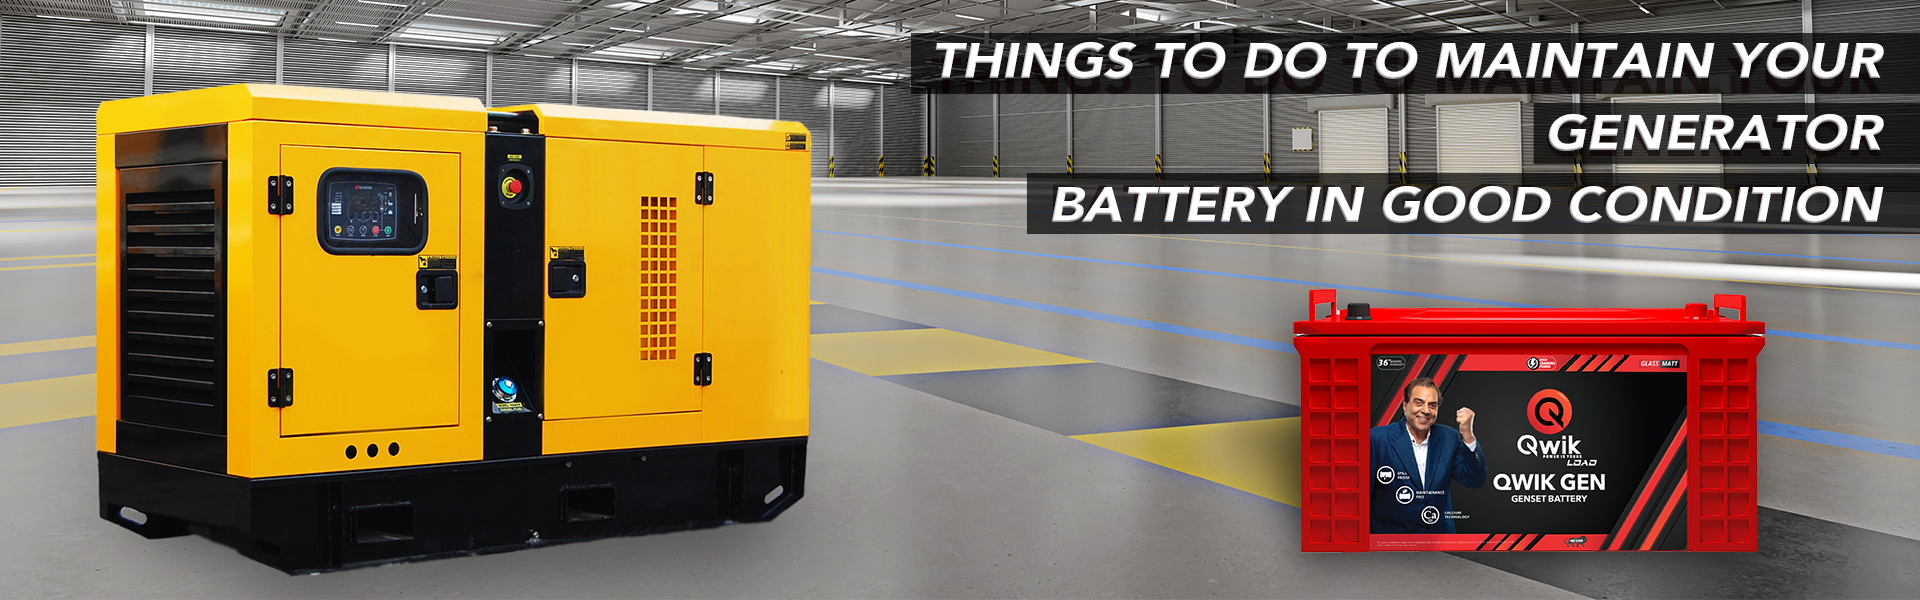 things to do to maintain generator battery